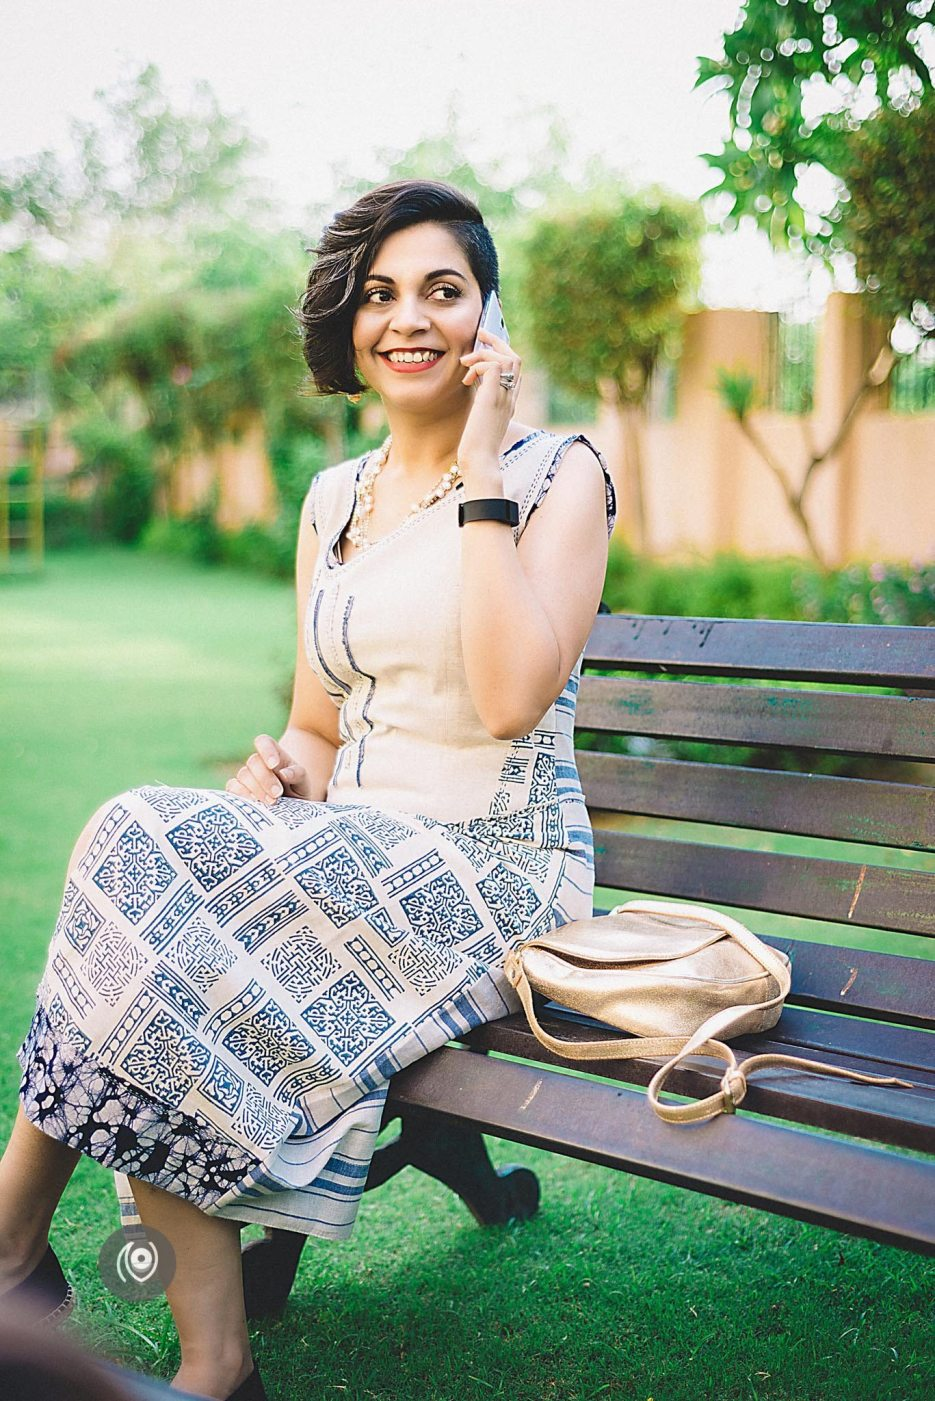 #CoverUp 42, Urvashi Kaur, RISA, Mi 4 Xiaomi, Naina.co Luxury & Lifestyle, Photographer Storyteller, Blogger.